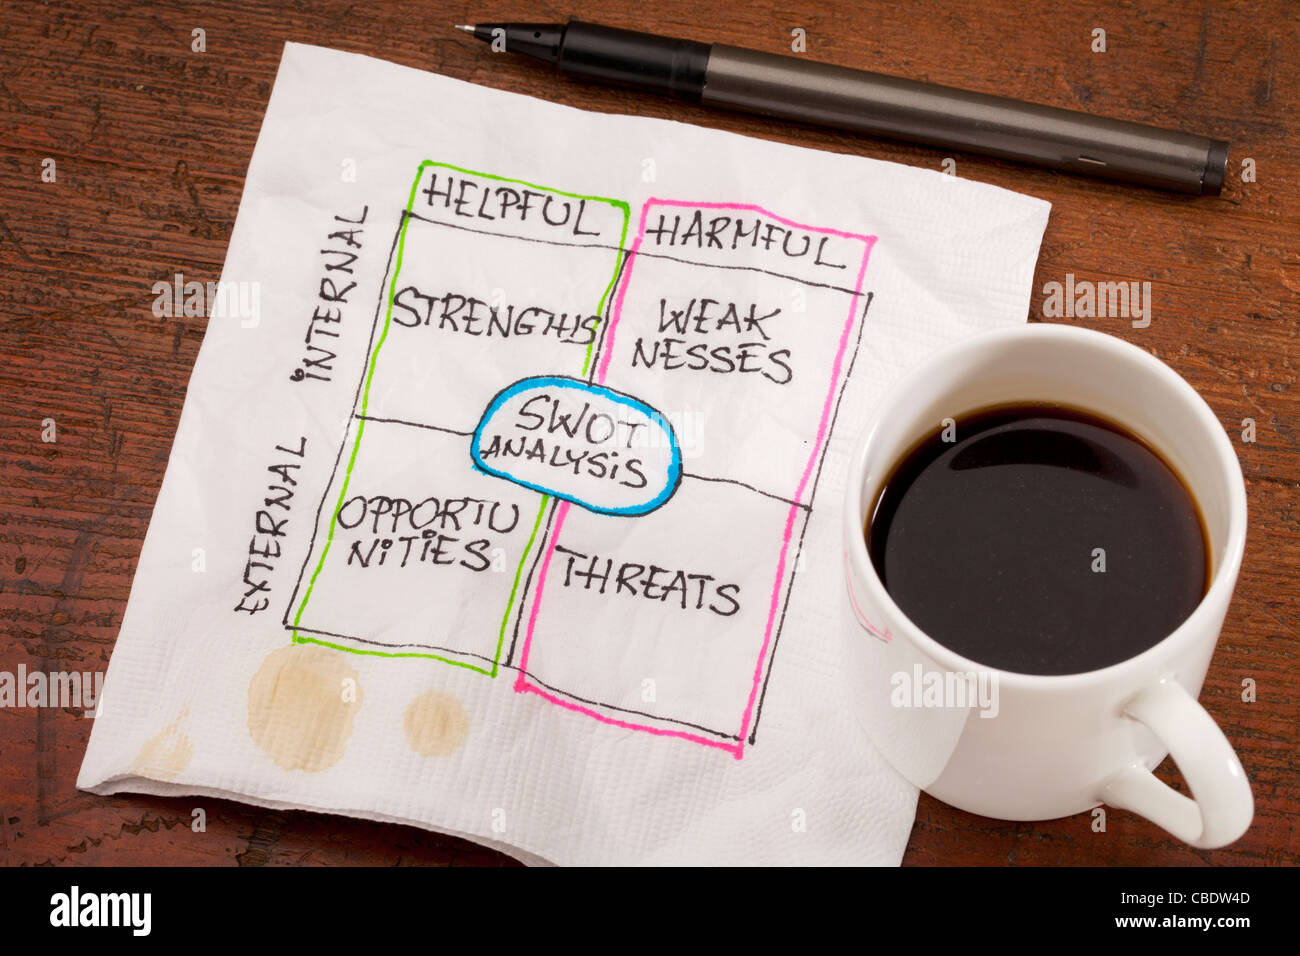 Weaknesses Stock Photos & Weaknesses Stock Images - Alamy